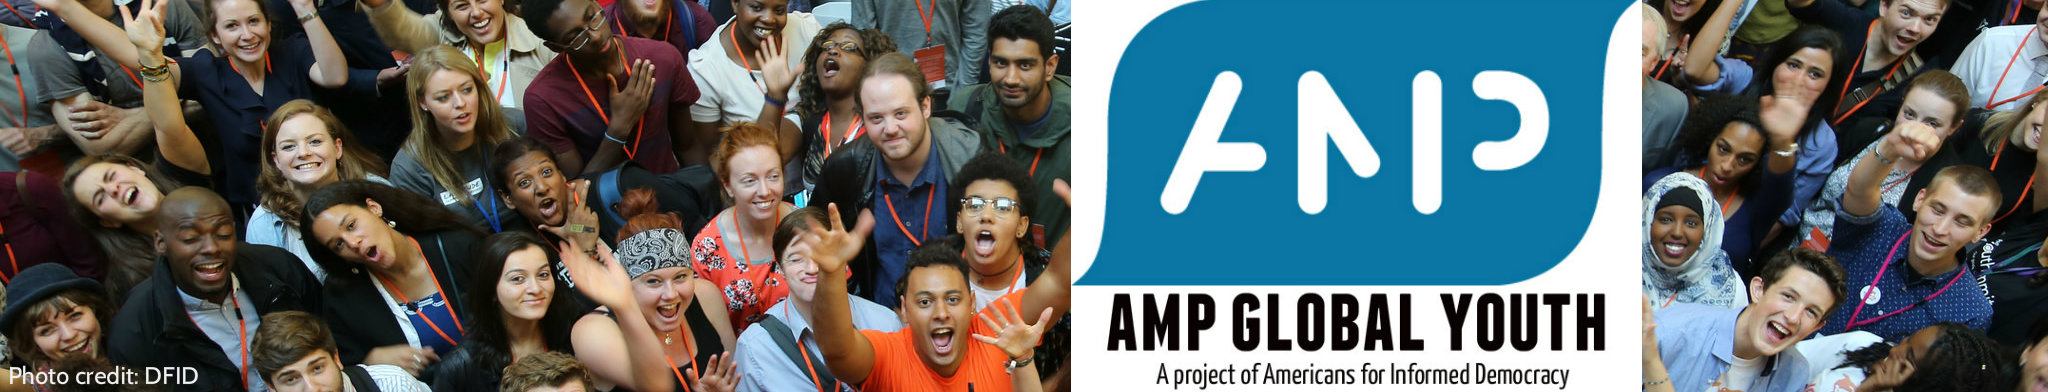 AMP Global Youth